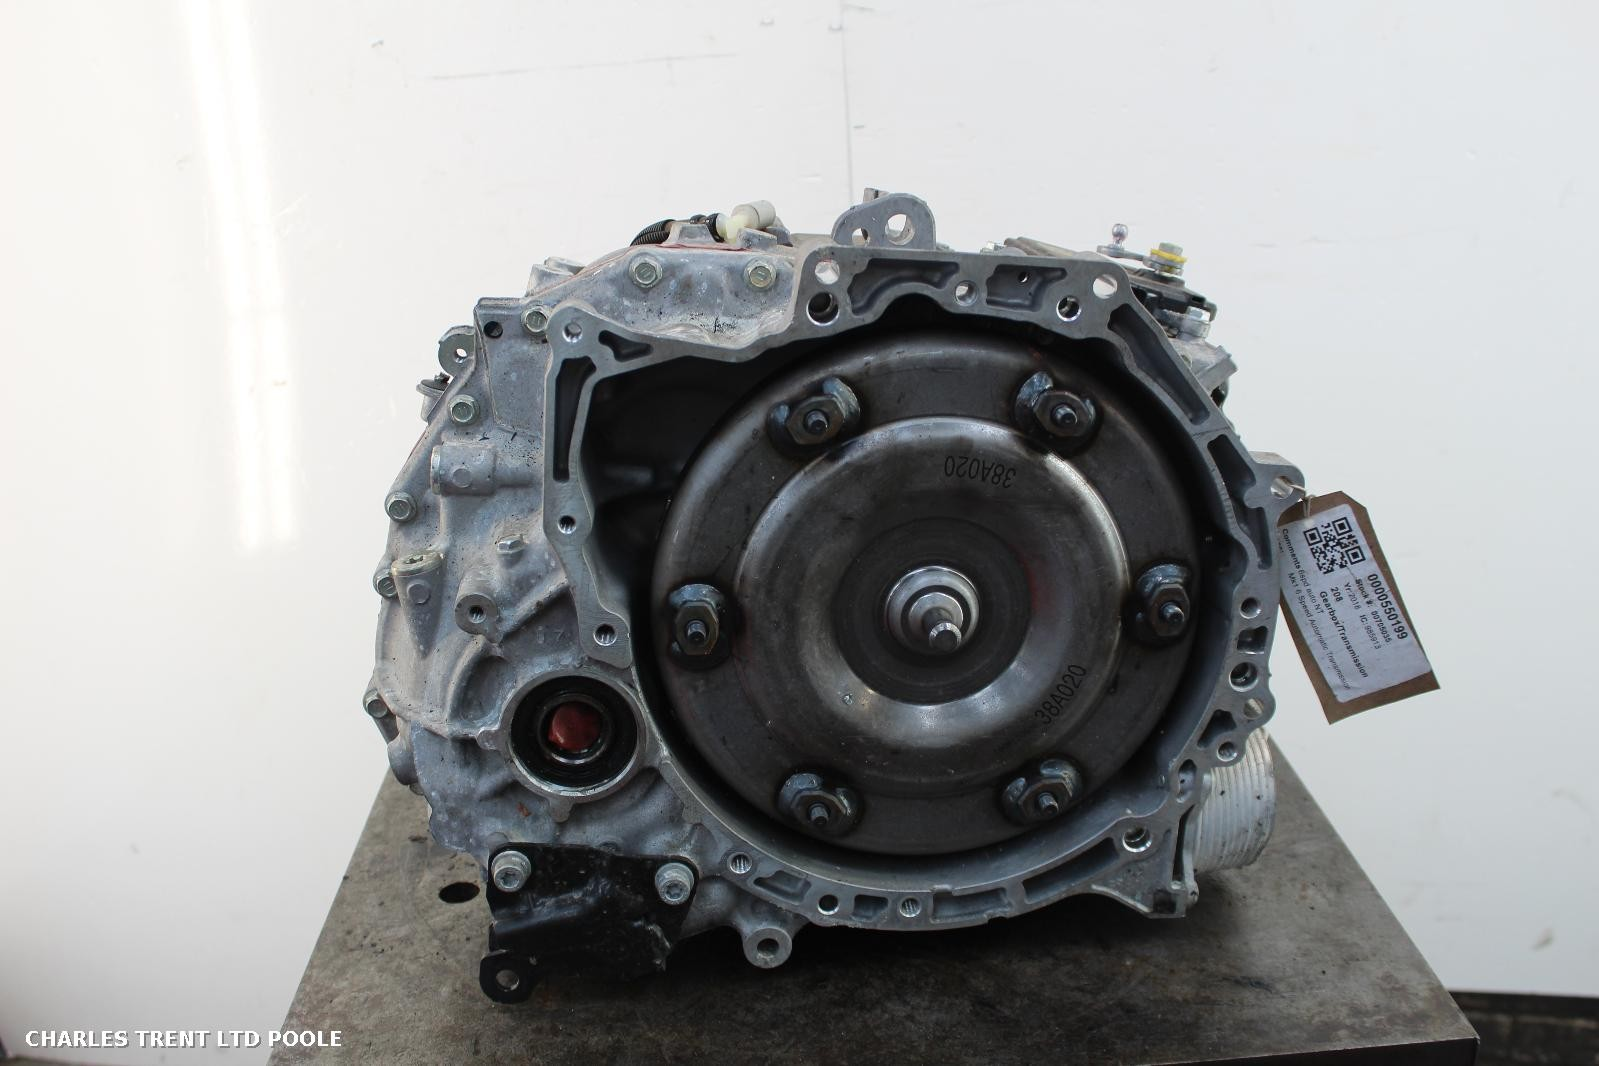 2018 - PEUGEOT - 208 - GEARBOXES / TRANSMISSIONS